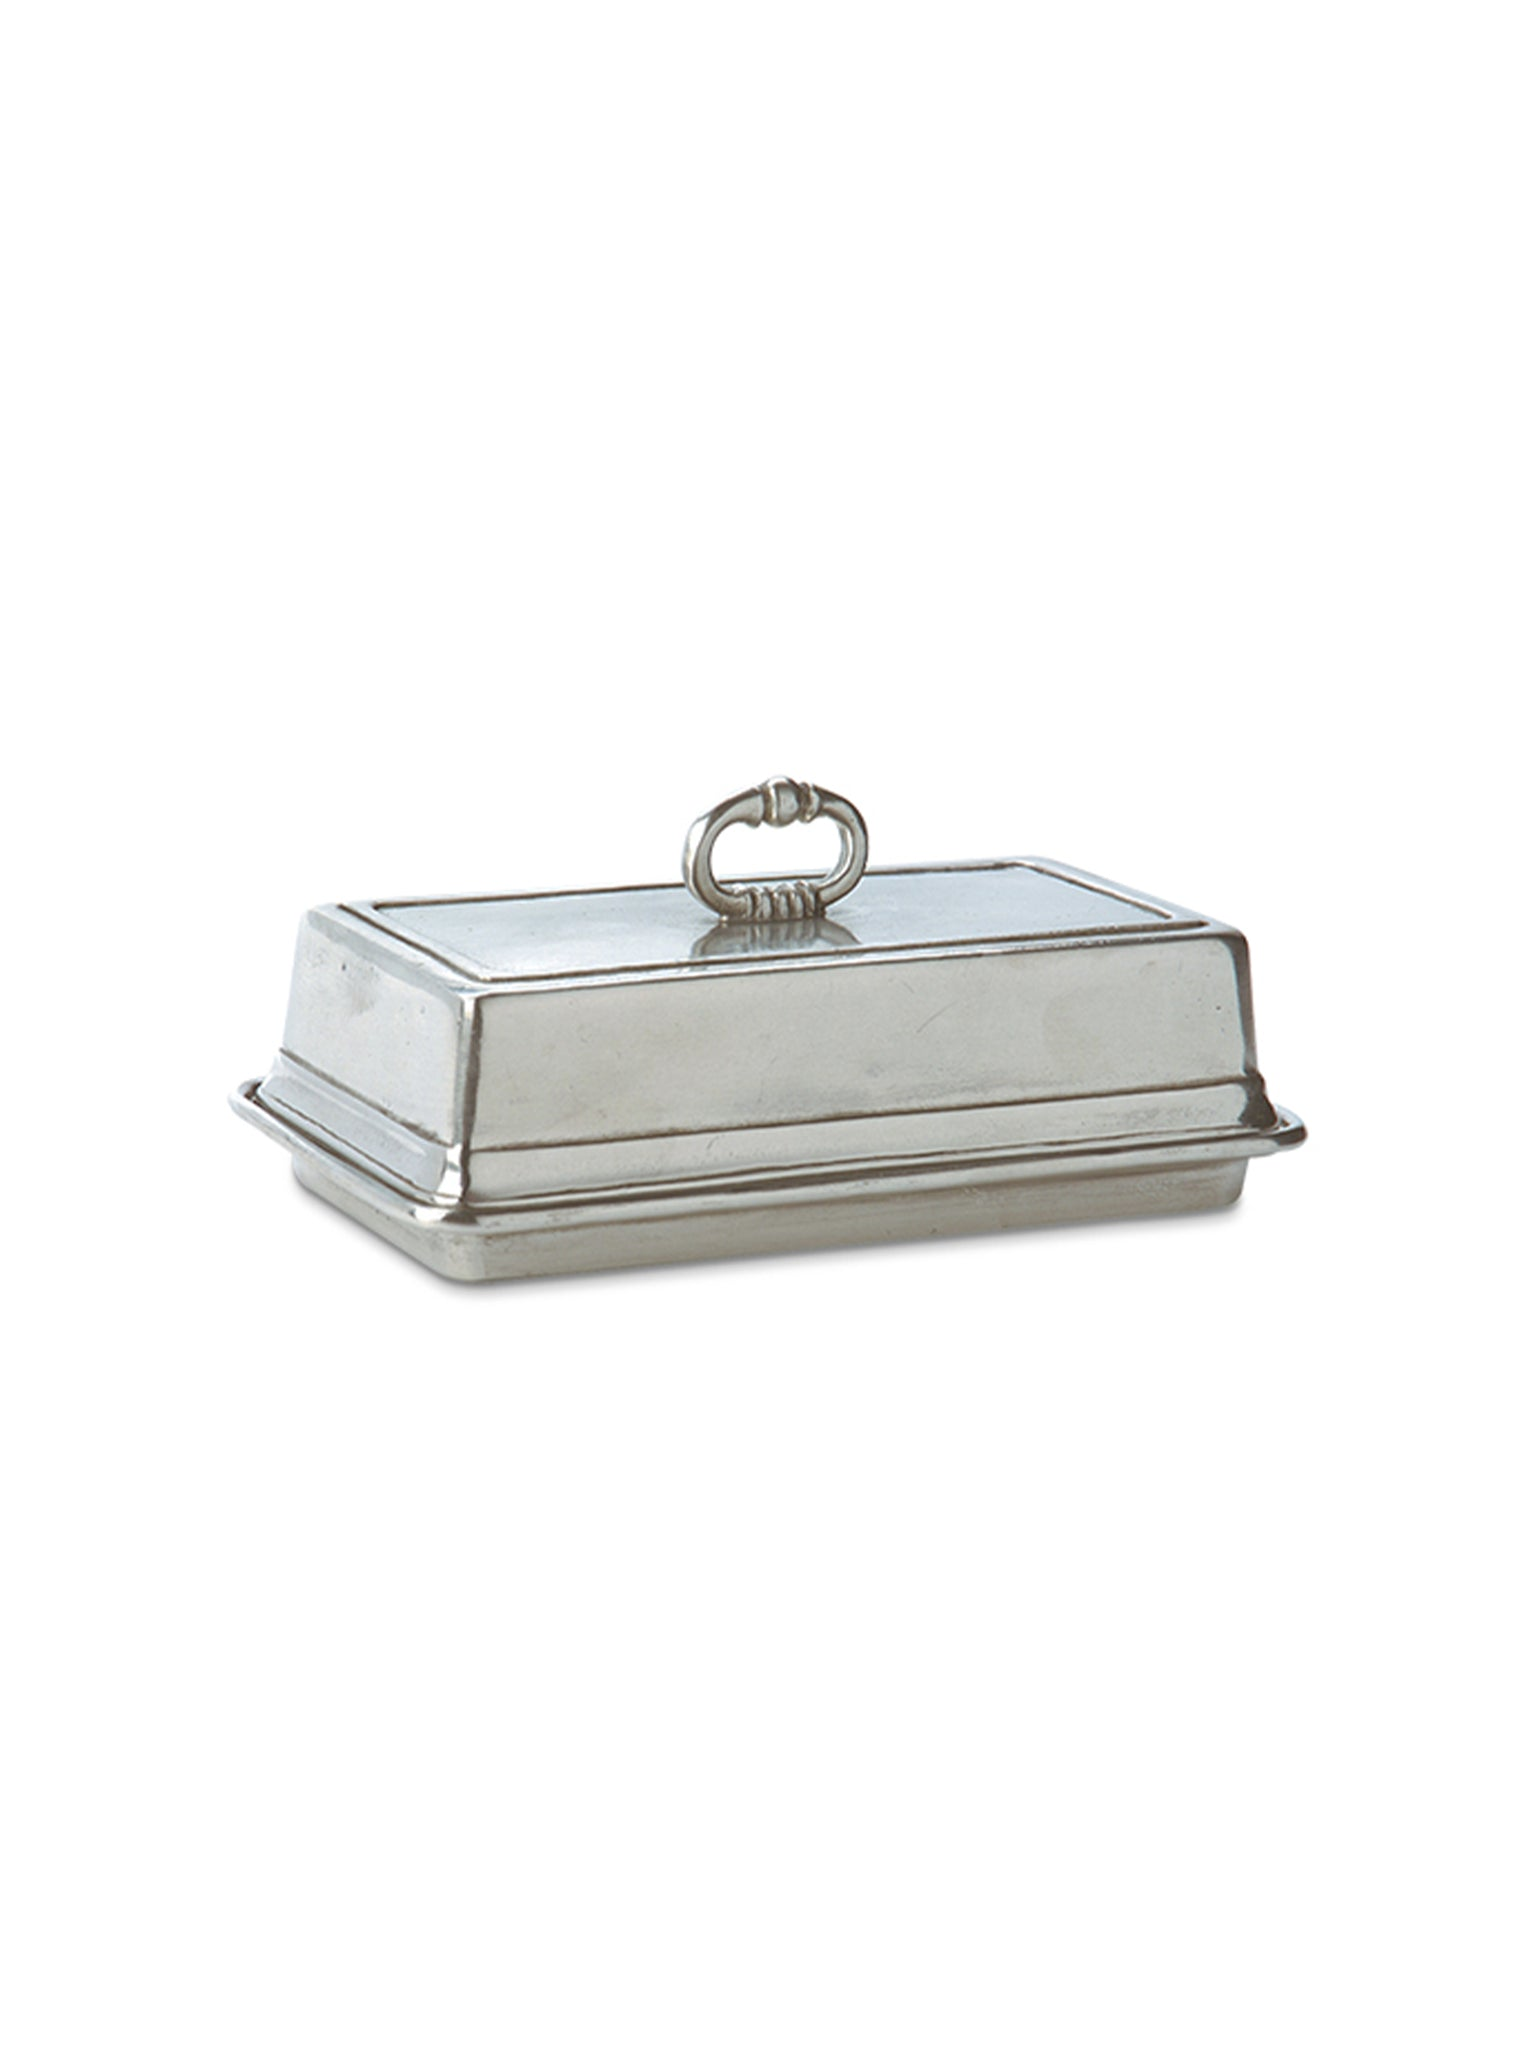 MATCH Pewter Covered Butter Dish Weston Table